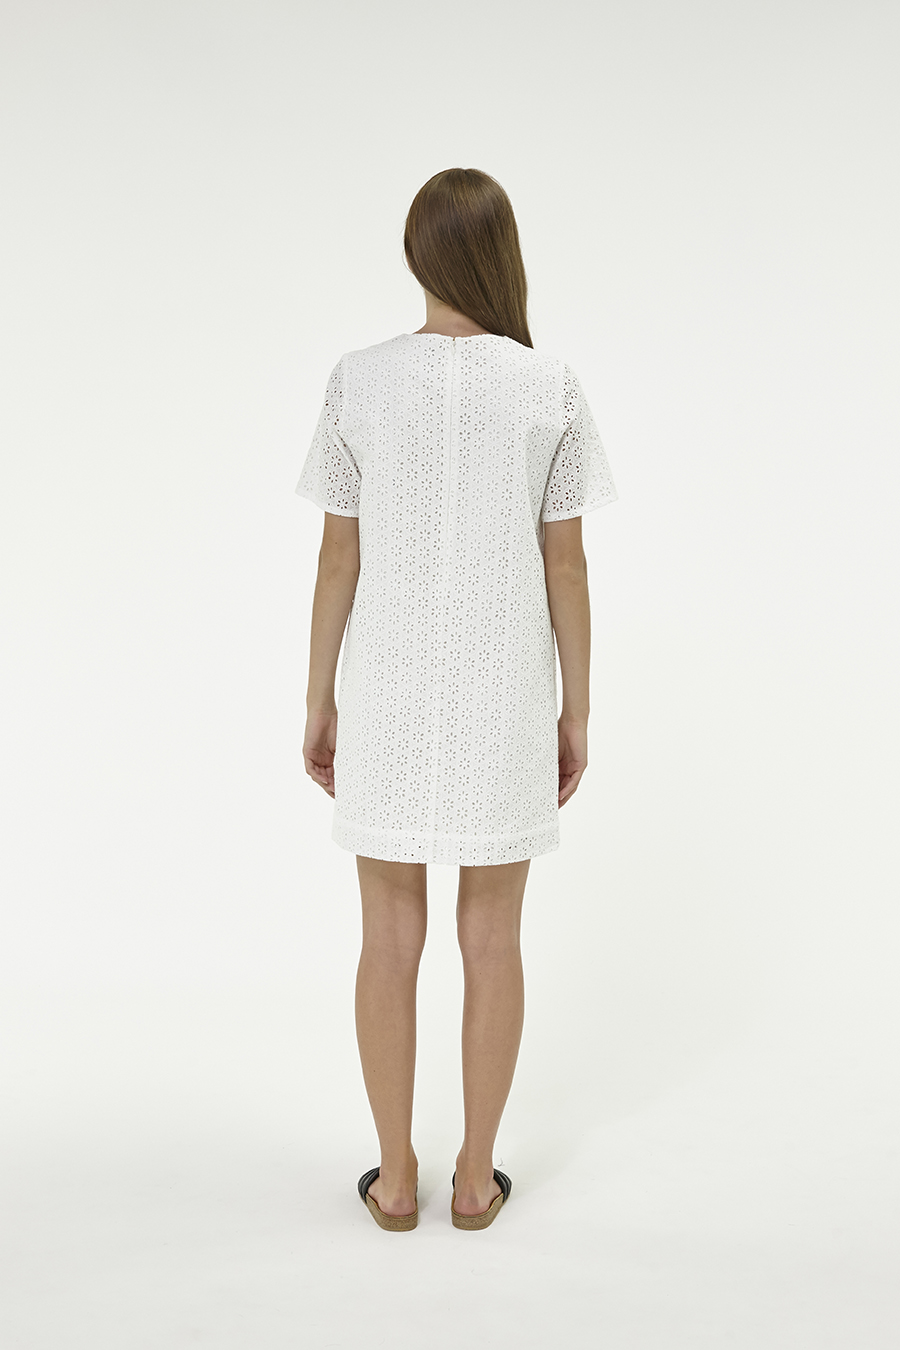 Huffer_Q3-16_W-Hope-Shell-Dress_White-03